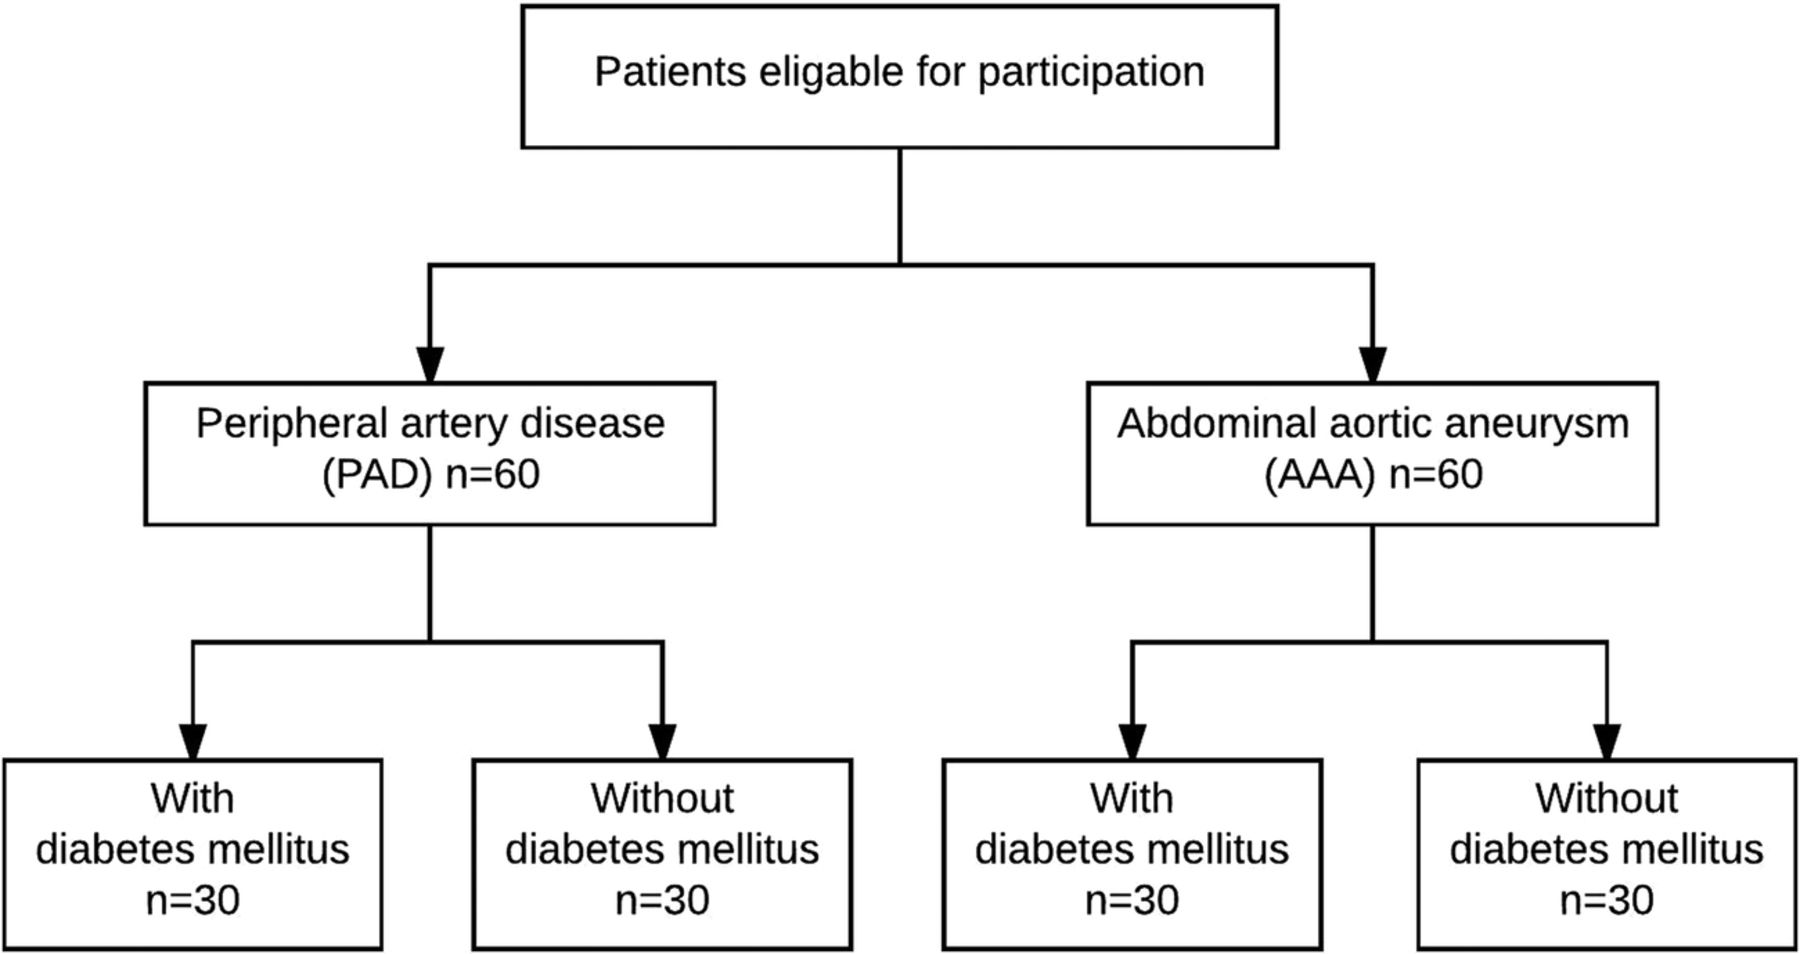 Diverging Effects Of Diabetes Mellitus In Patients With Peripheral Artery Disease And Abdominal